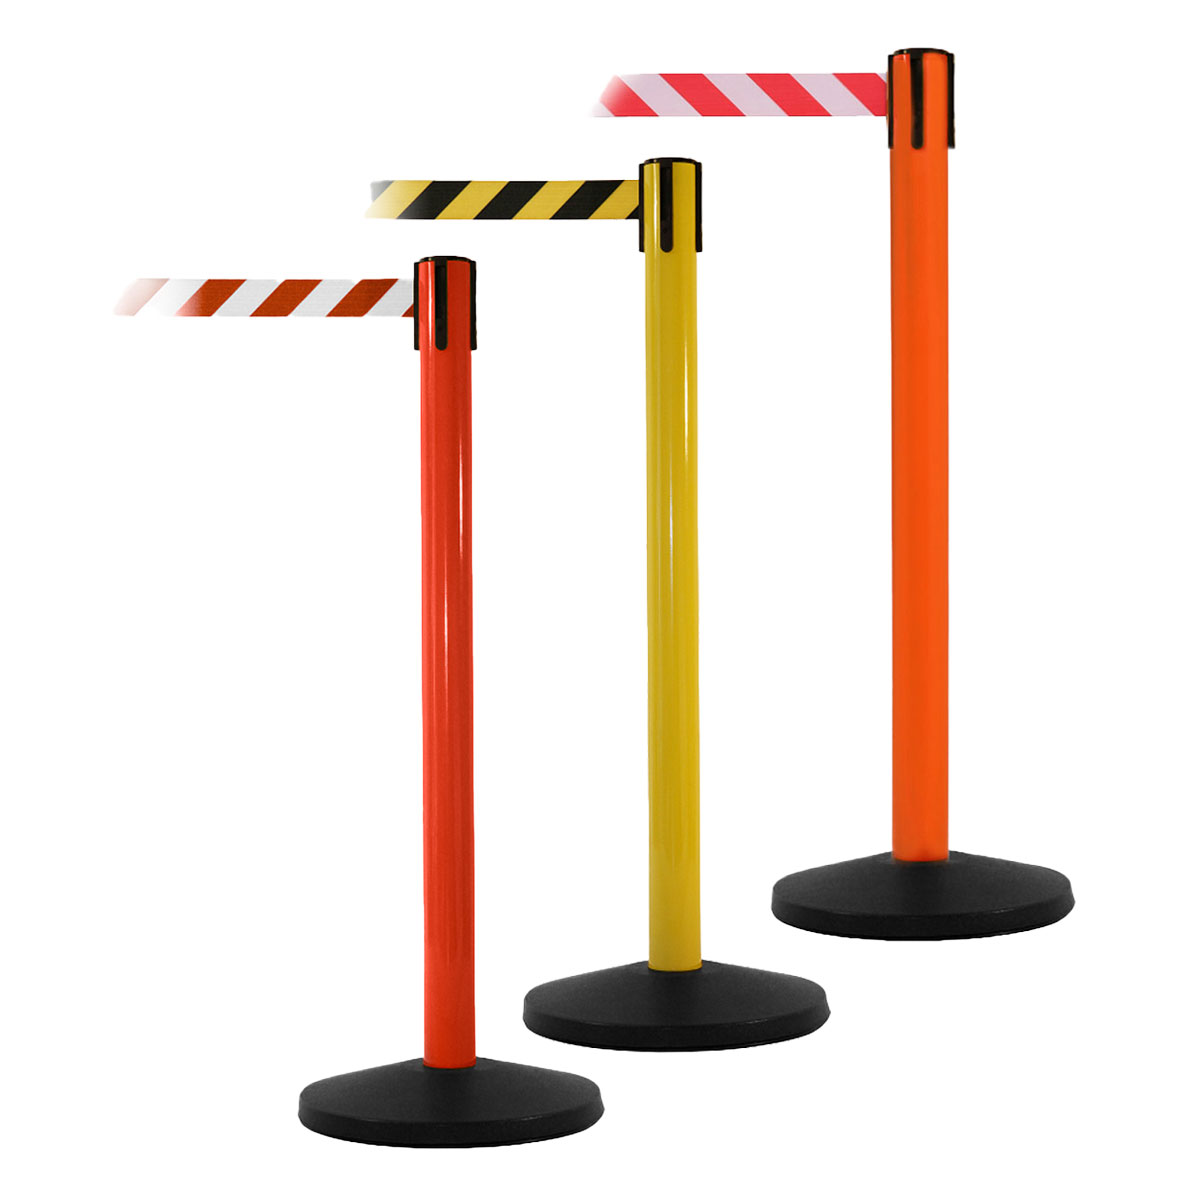 SafetyMaster Retracting Safety Barriers